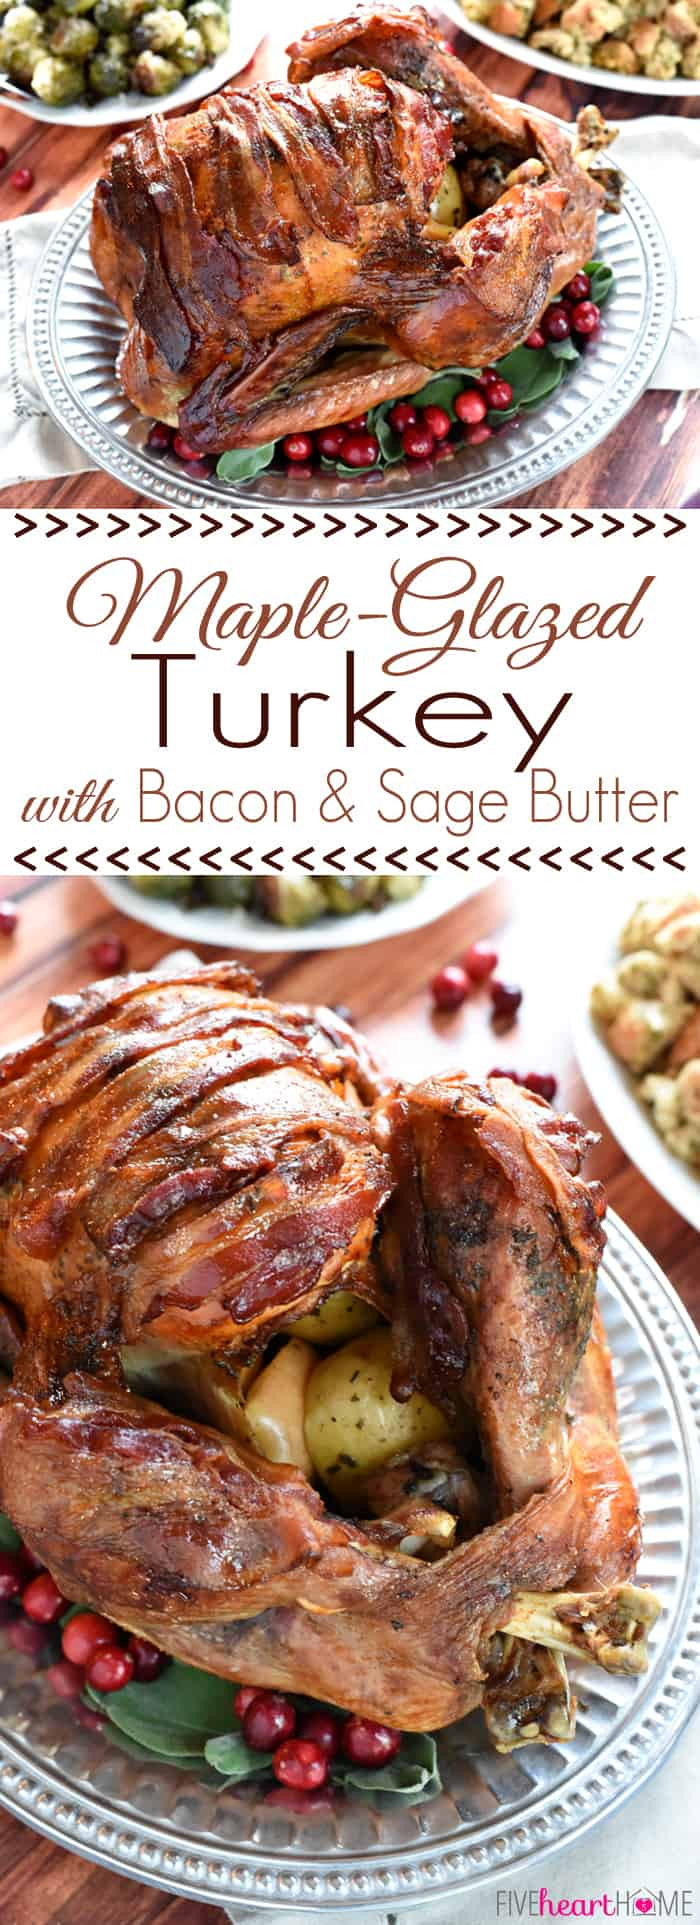 Thanksgiving Turkey With Bacon  Maple Glazed Turkey with Bacon and Sage Butter